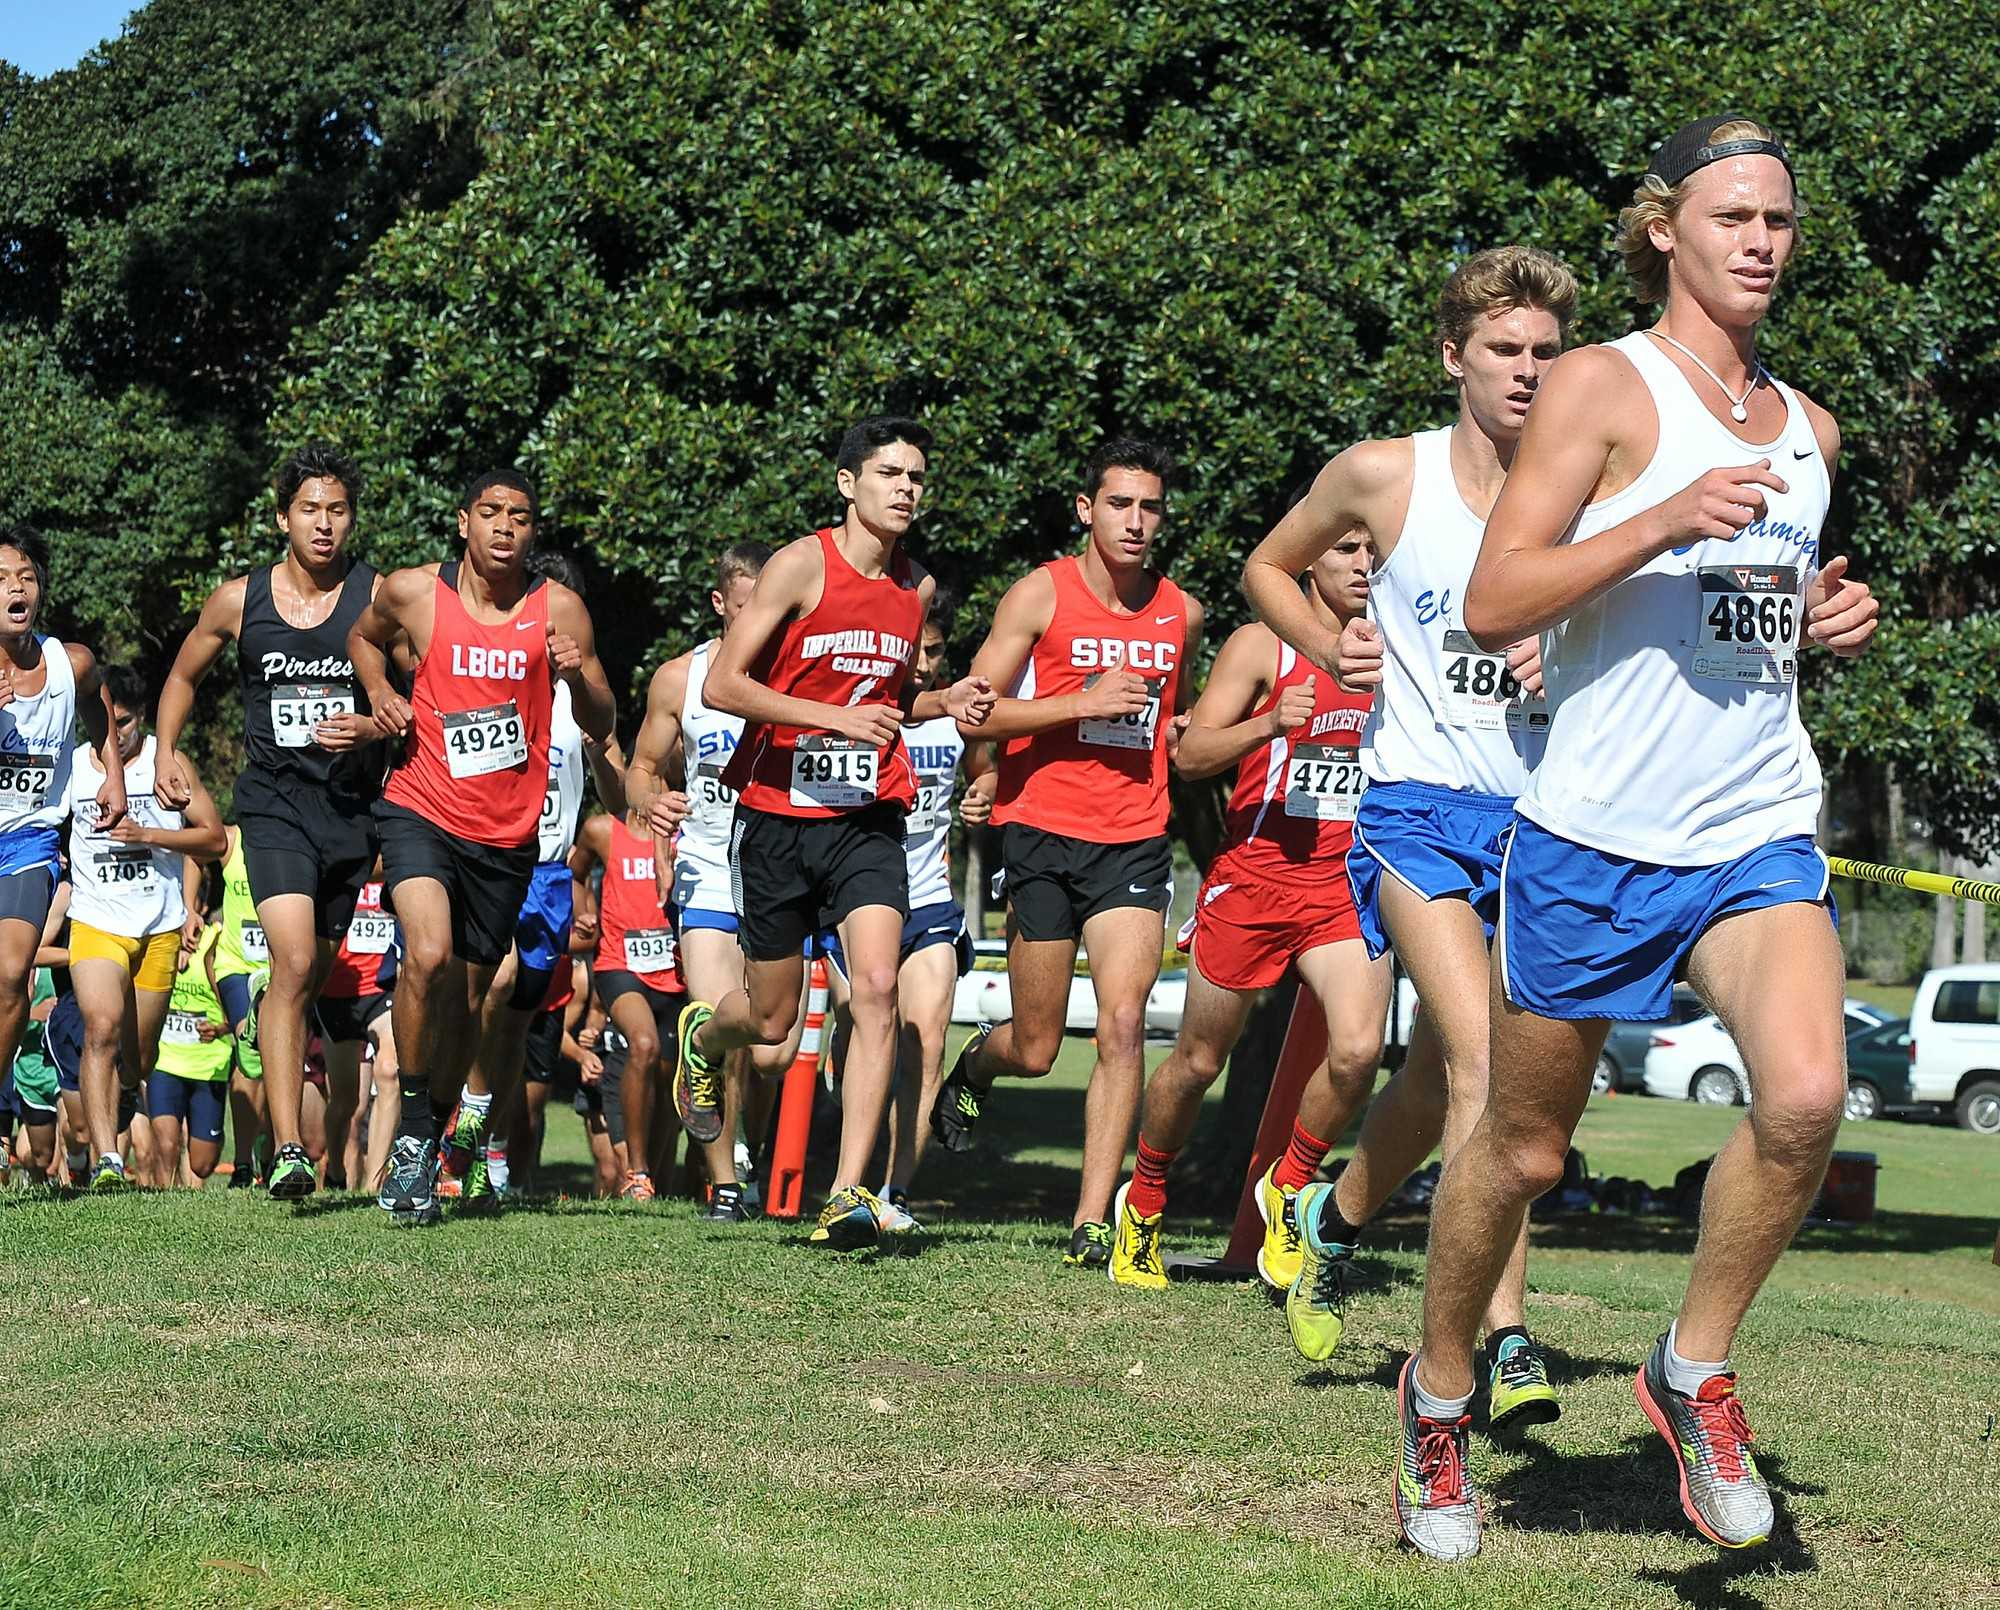 Freshmen Michael Moody (front) and David Hodges (behind) competed in a dense field of runners at the CCCAA SoCal Regional championships Friday morning. Photo courtesy of coach Dean Lofgren.